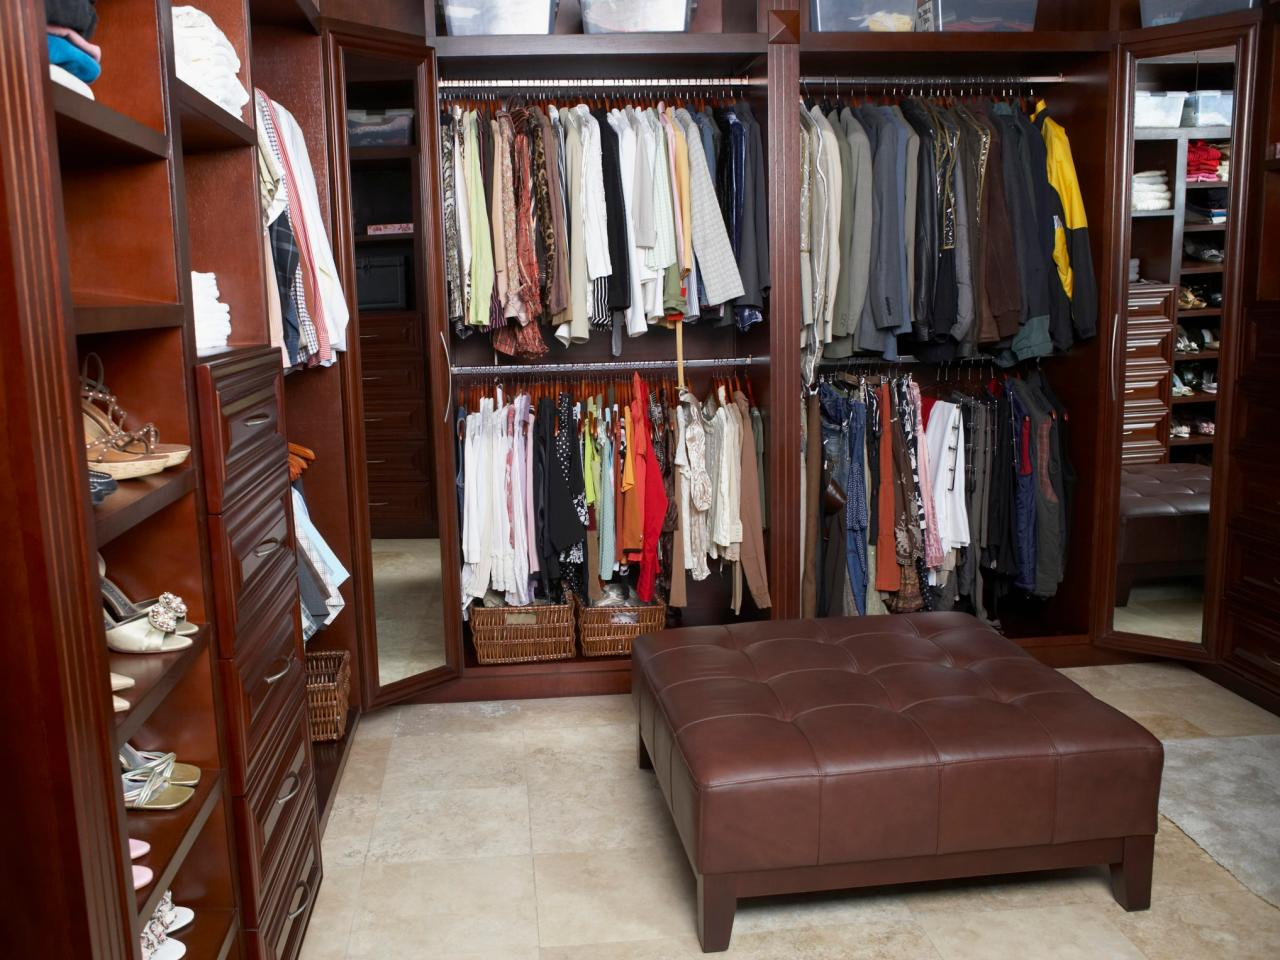 Master Closet Design Ideas masterbedroomcloset003jpg photo this photo was uploaded by whgmagazine find other masterbedroomcloset003 closet redocloset remodelcloset Walk In Closet Design Ideas